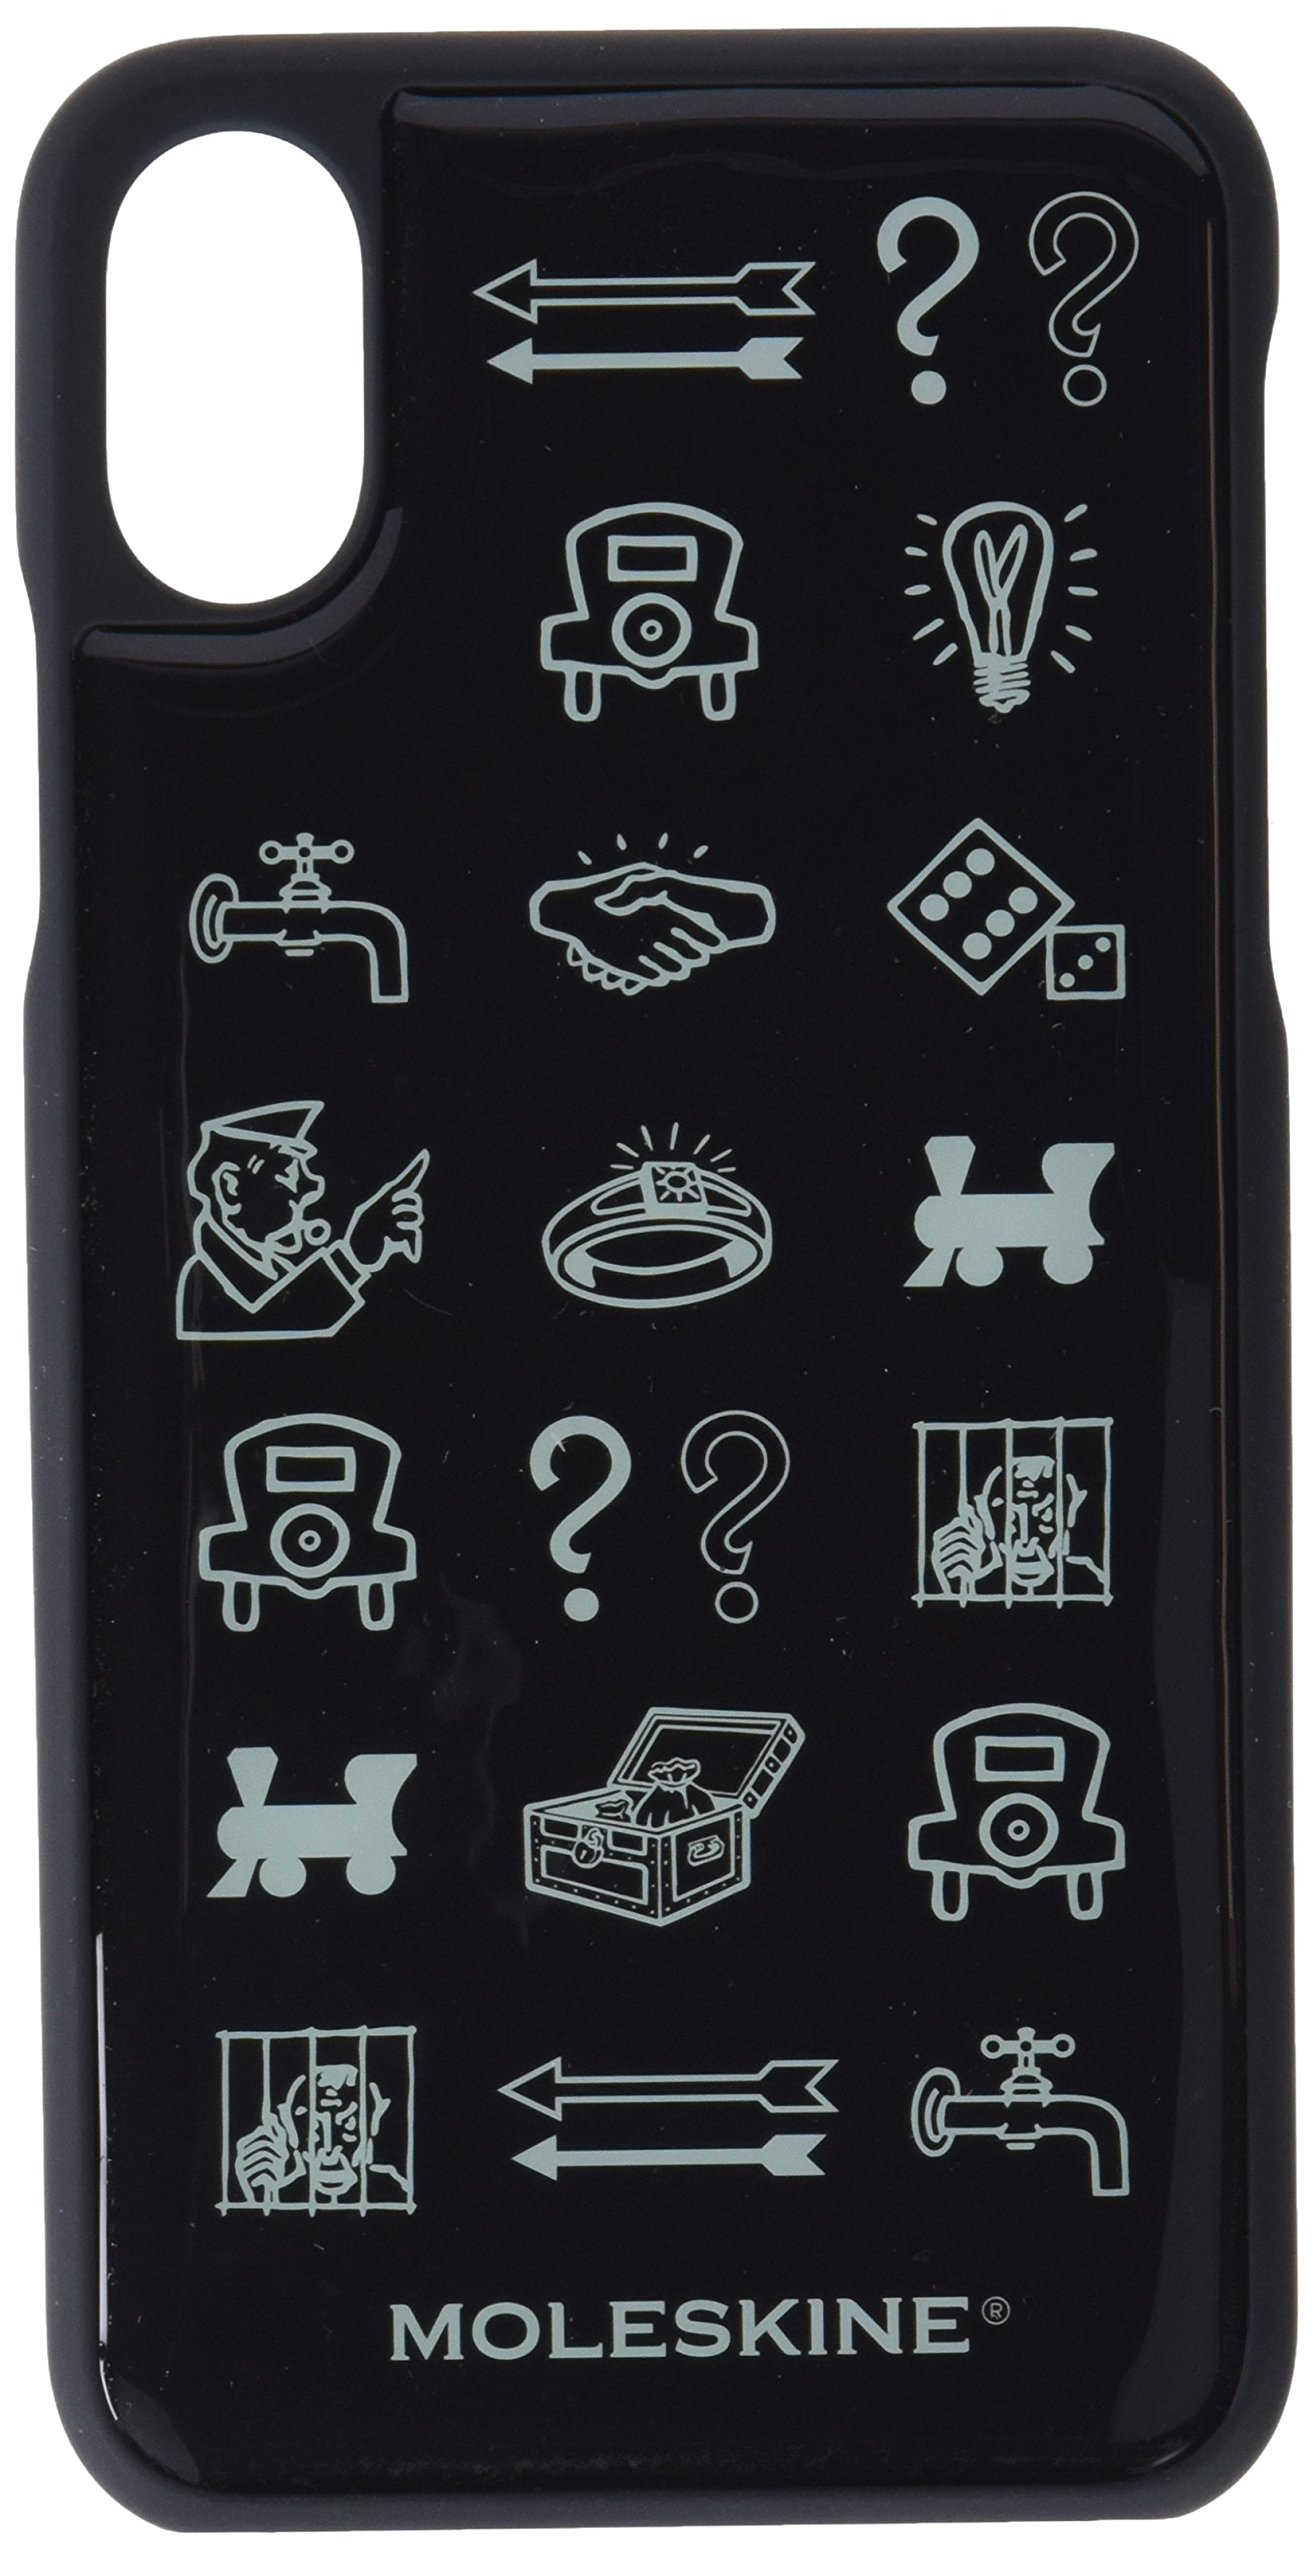 Moleskine Case Limited Edition Monopoly Iphone X